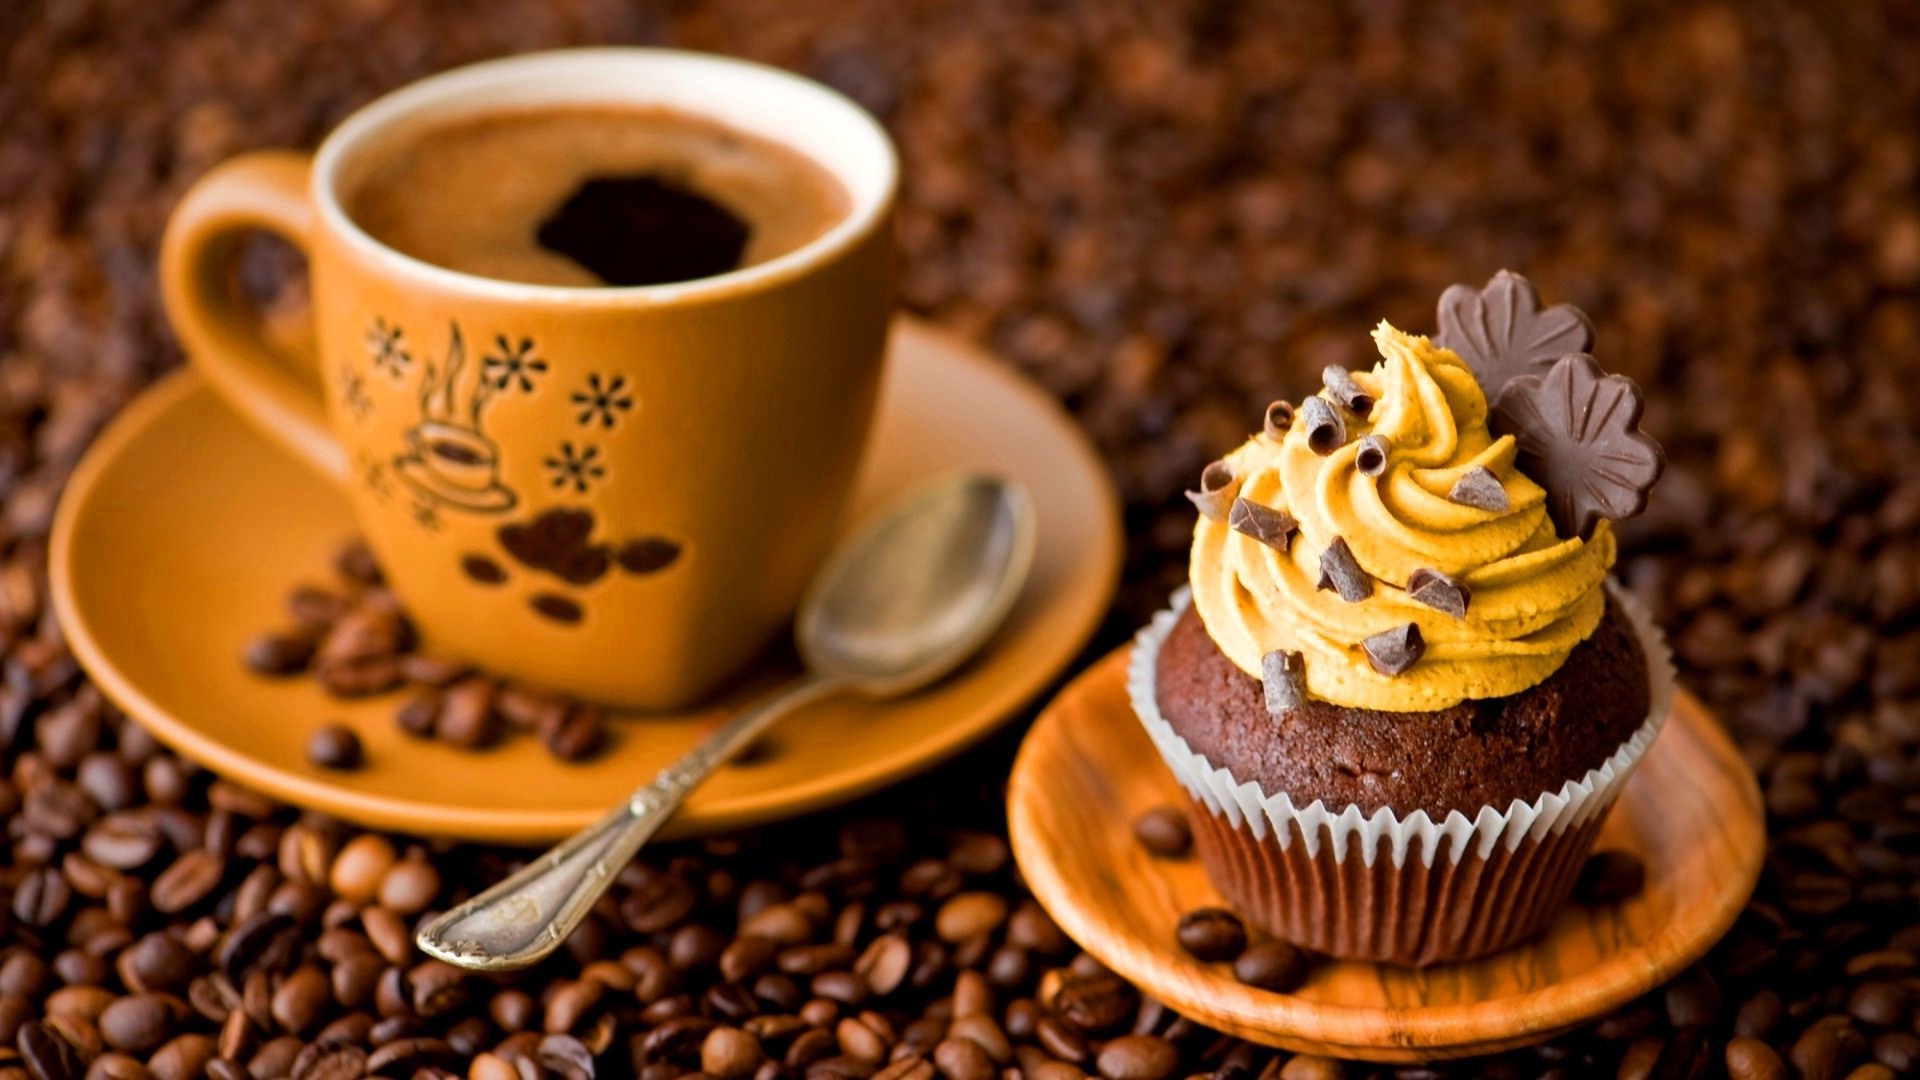 Download Coffee And Cream Wallpaper Gallery